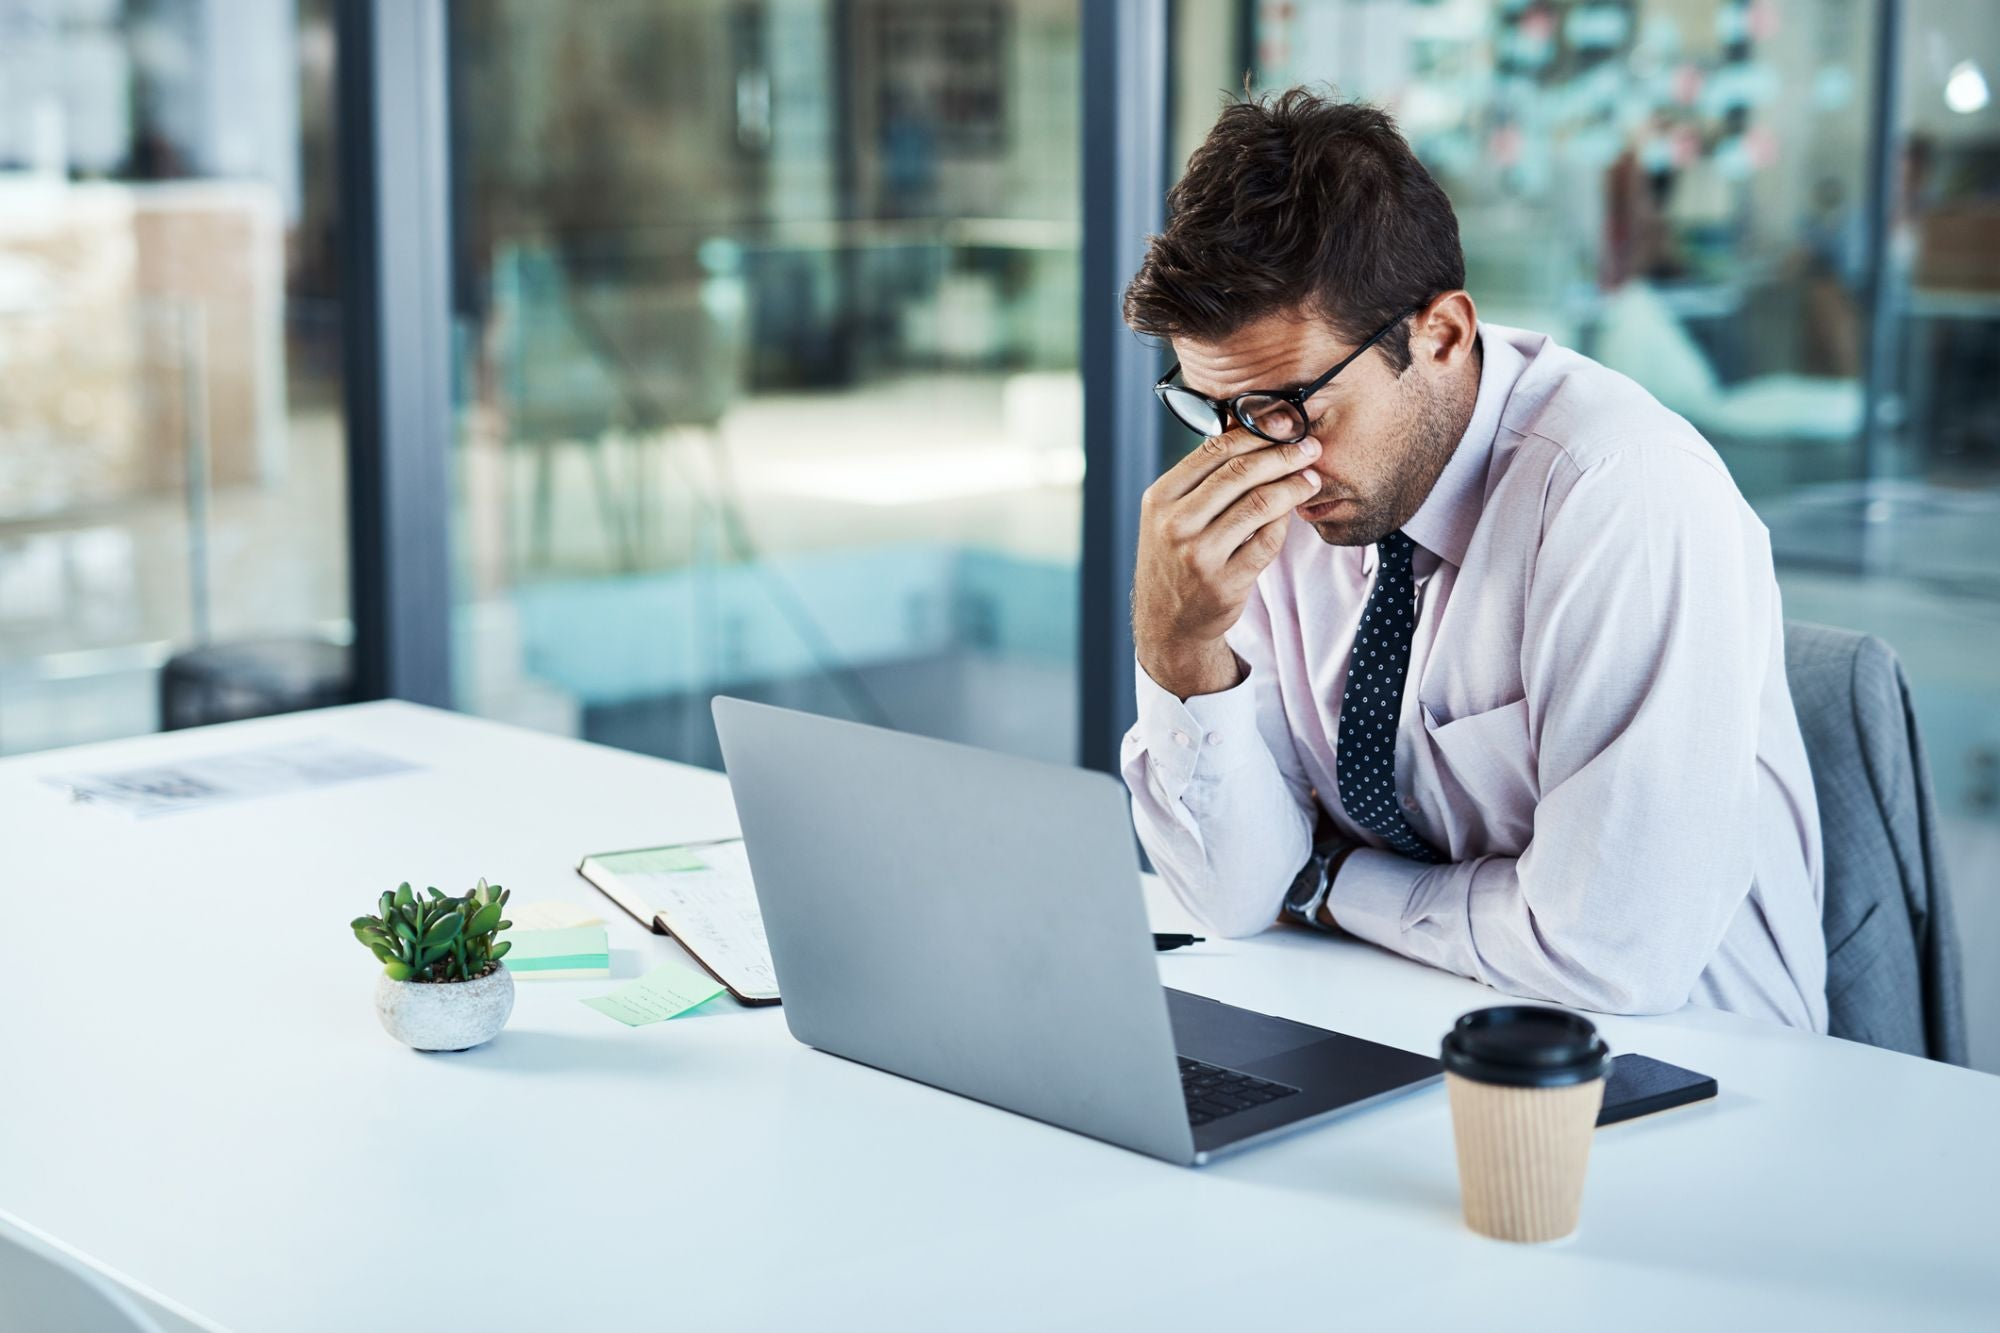 To Prevent Workplace Burnout, Ask These 3 Questions